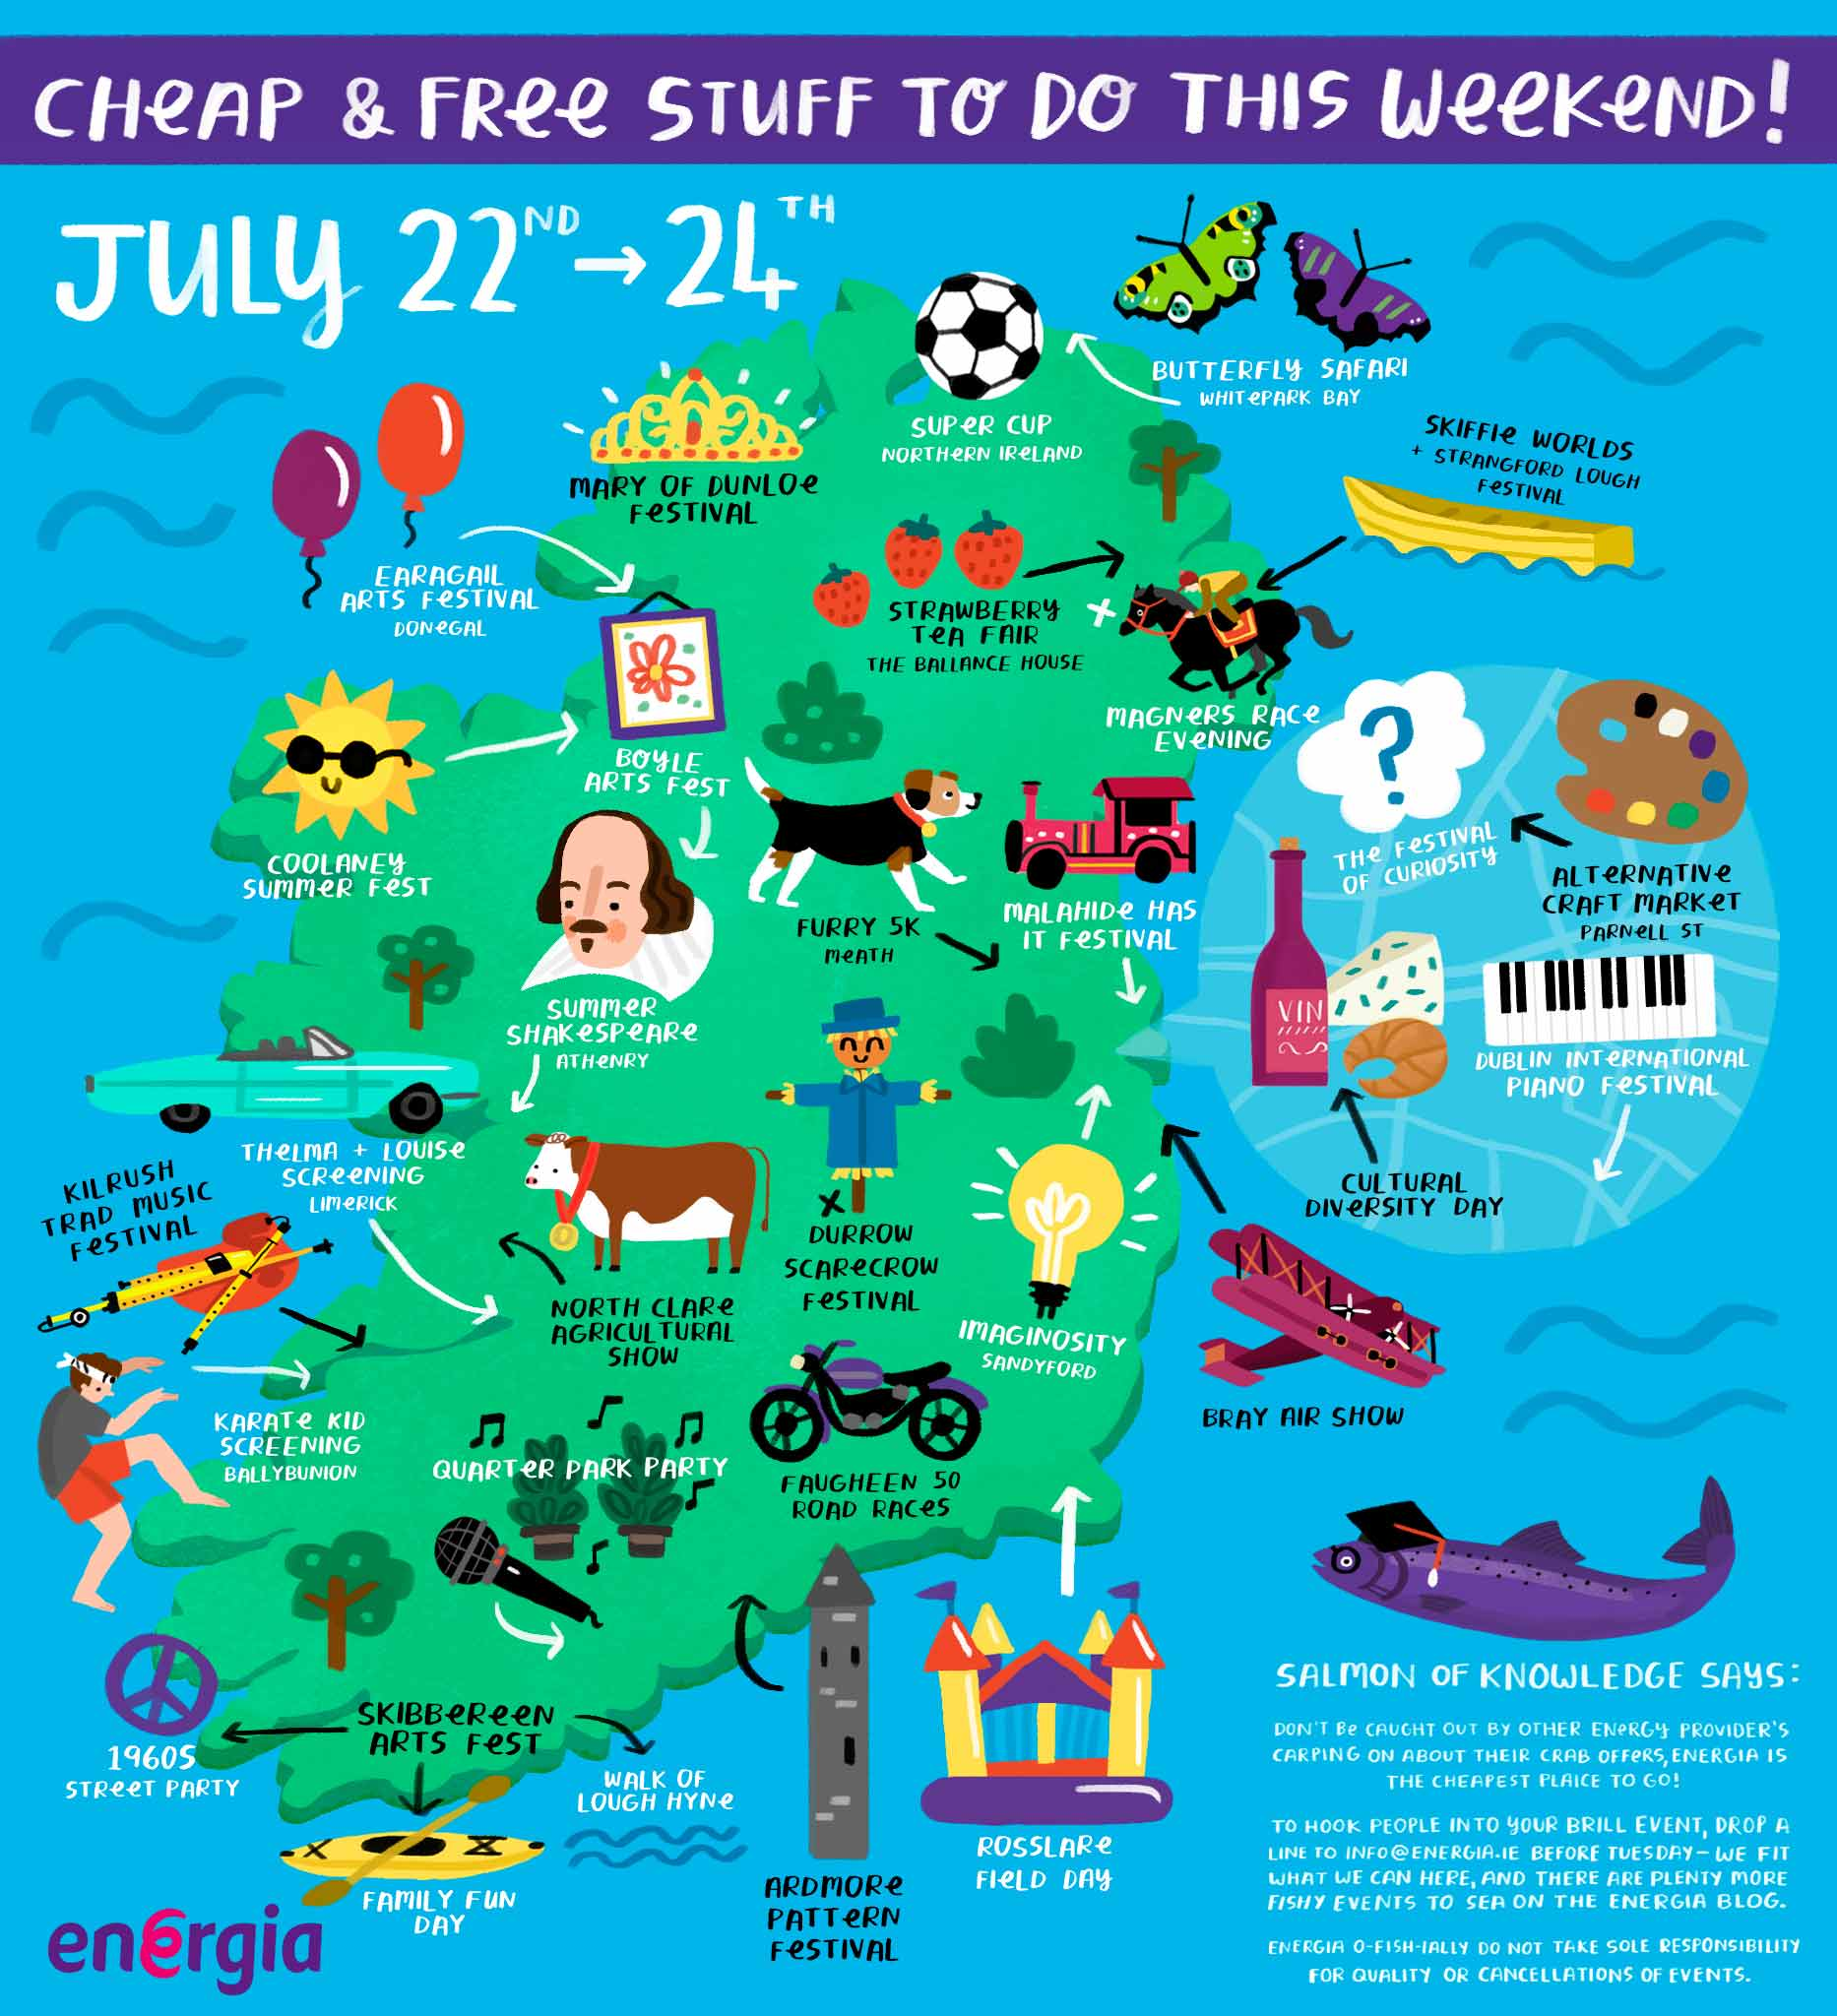 Cheap & Free stuff to do this weekend 22 - 24 July